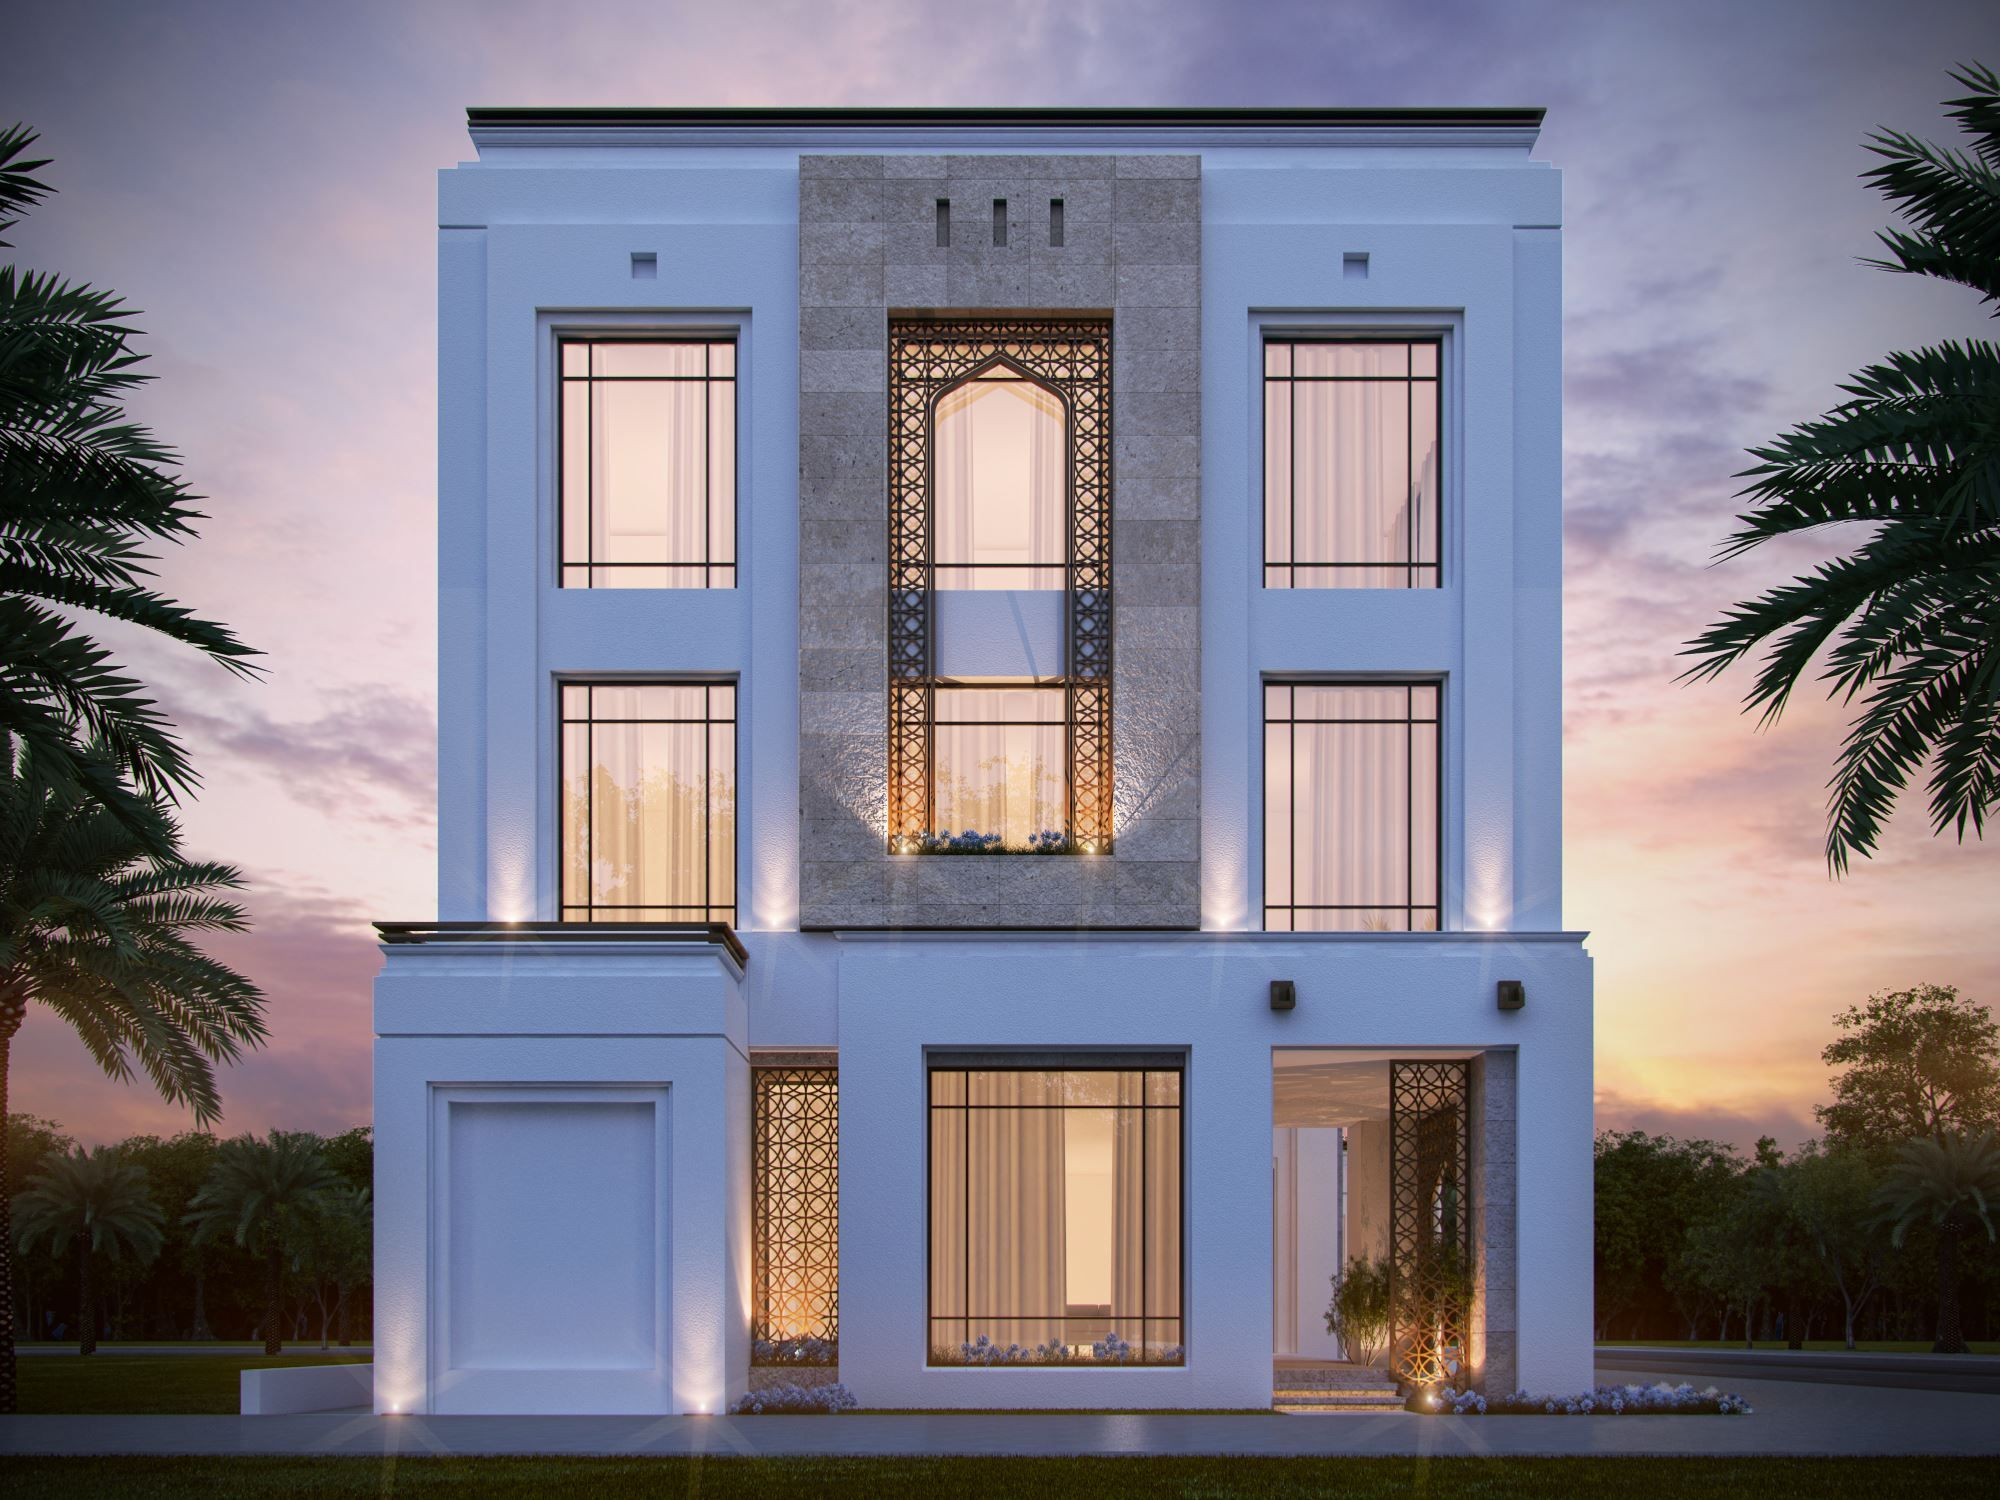 pleasing islamic design house usa. private villa 400 m kuwait sarah sadeq architects  Classical ArchitectureFacade ArchitectureIslamic ArchitectureHouse